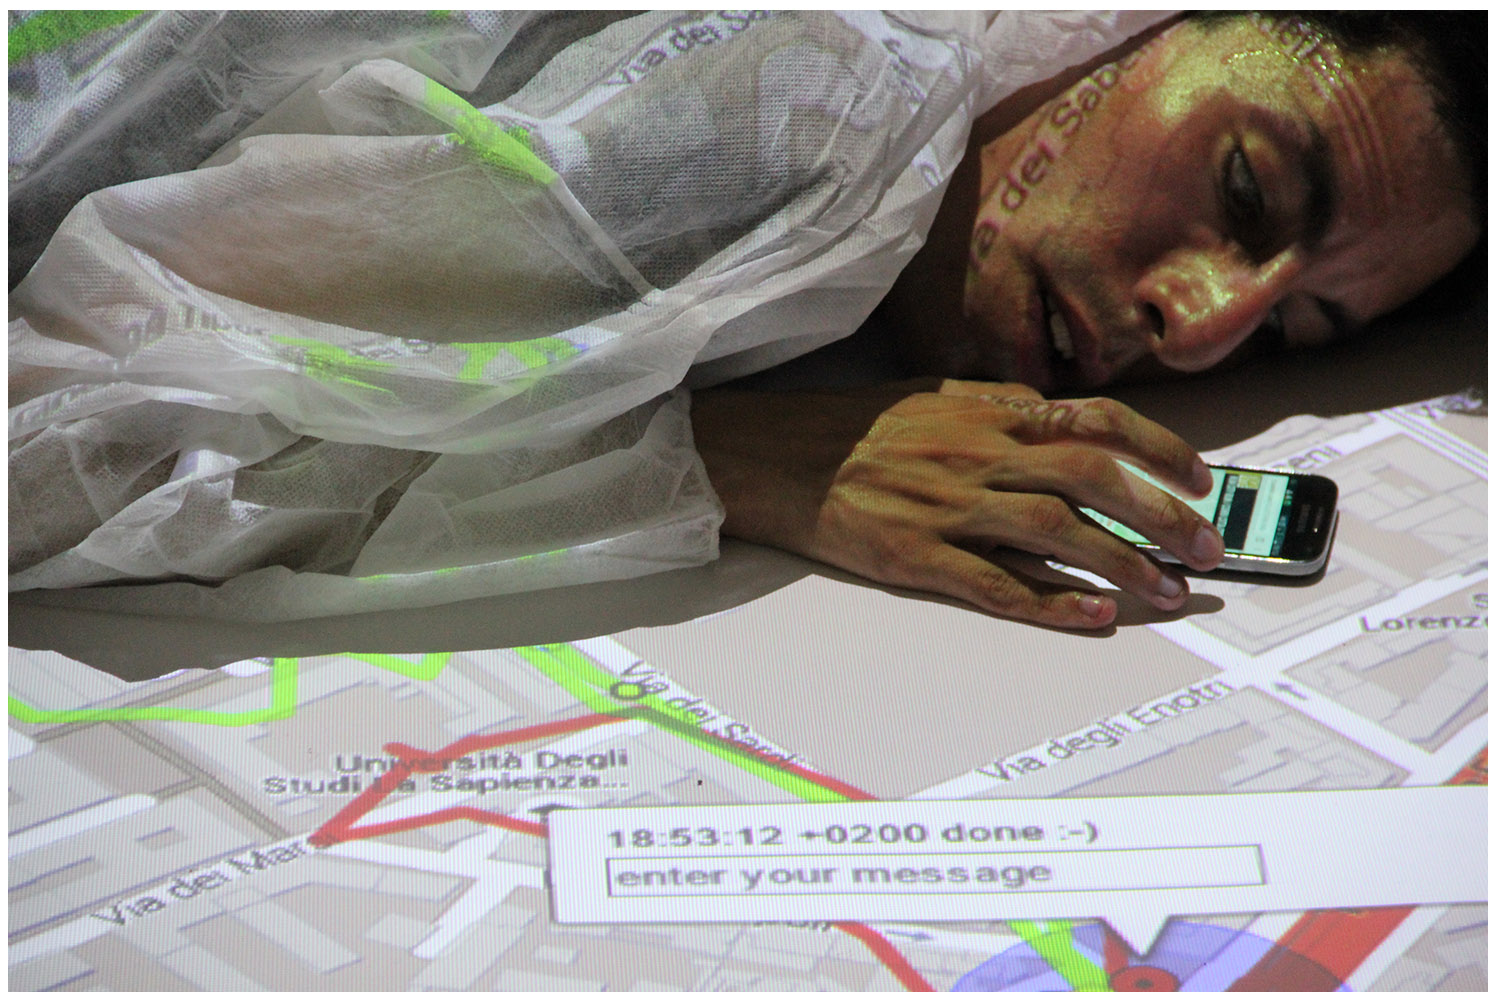 Photograph of a person lying face-down on a projection of a street map. The person is wearing a white protective suit, which is also acting as a projection space. The person has one hand on a mobile phone.